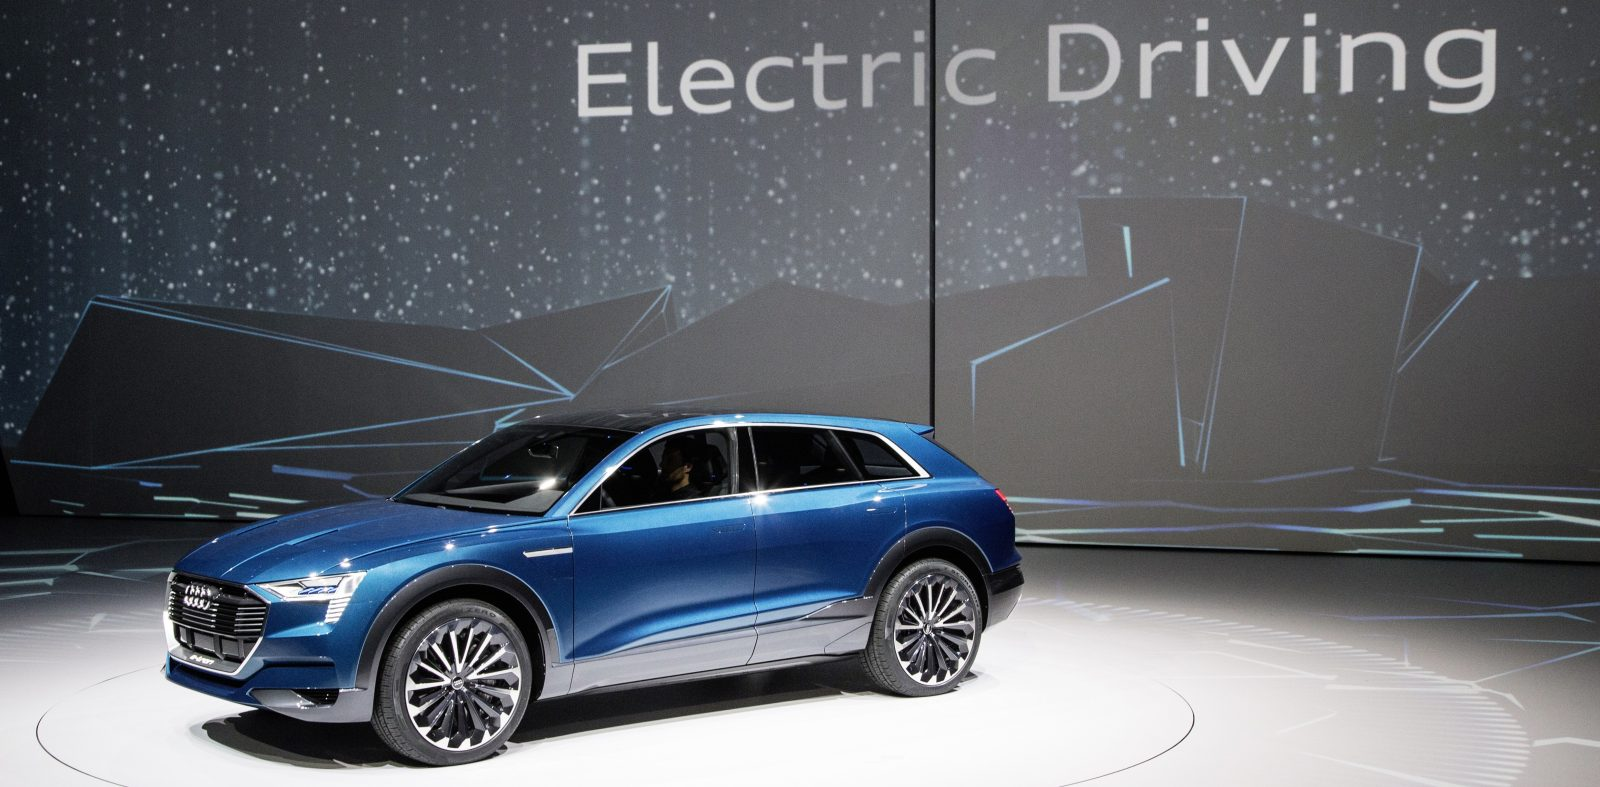 Audi Confirms Allelectric Etron Quattro SUV Starting Price Of - Audi e car